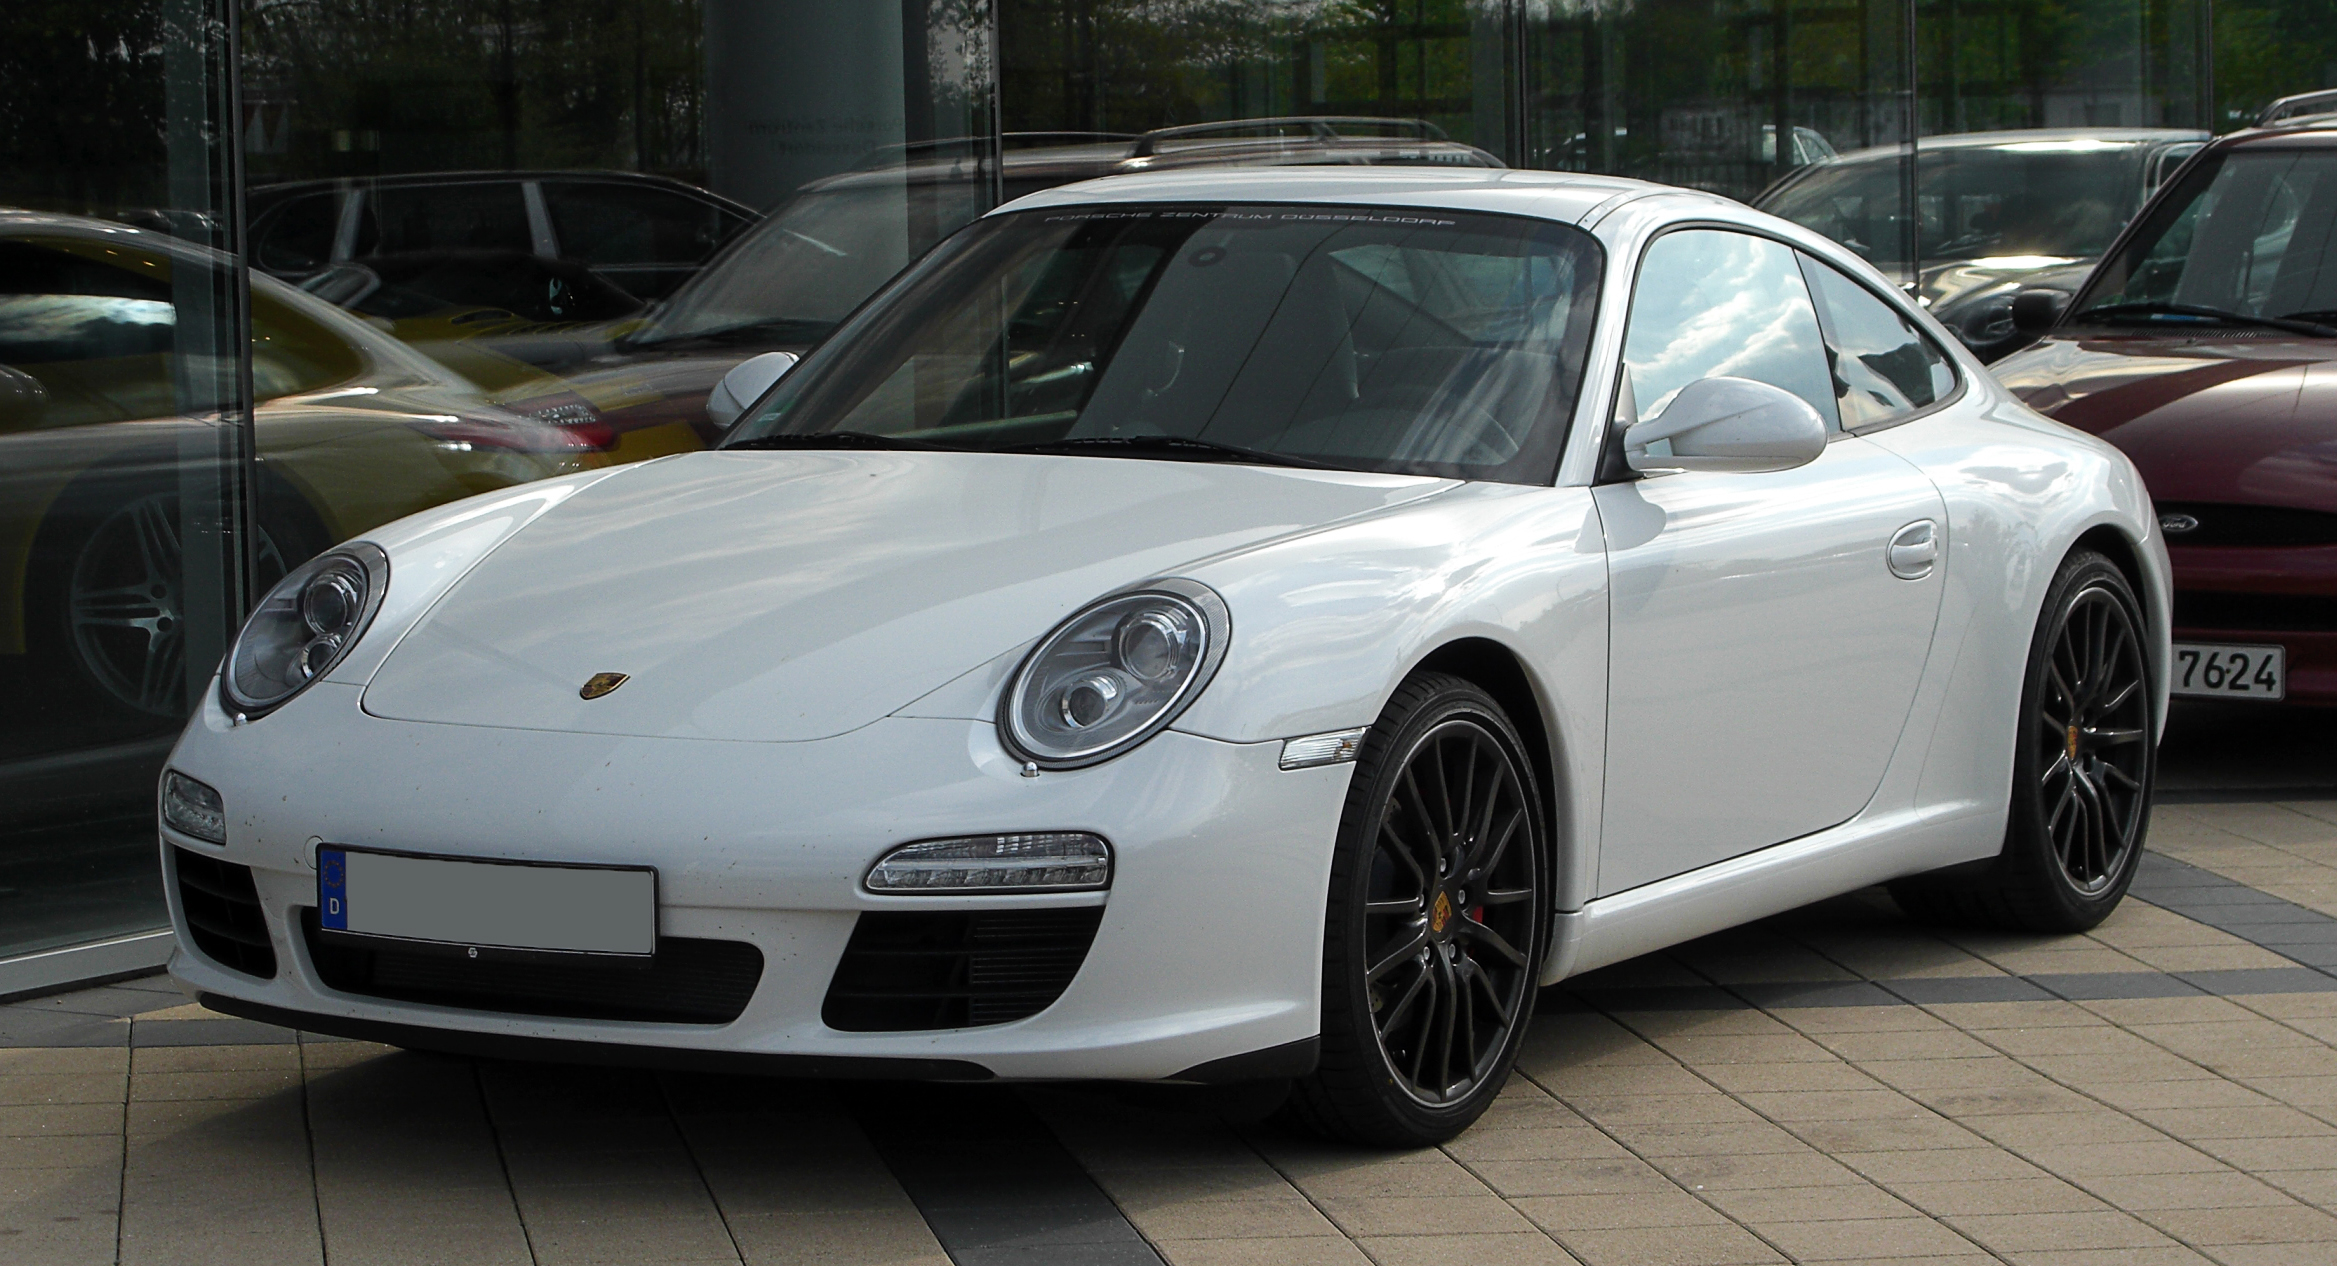 Porsche 997 Are Boxer Engines Reliable Past 100000 Miles